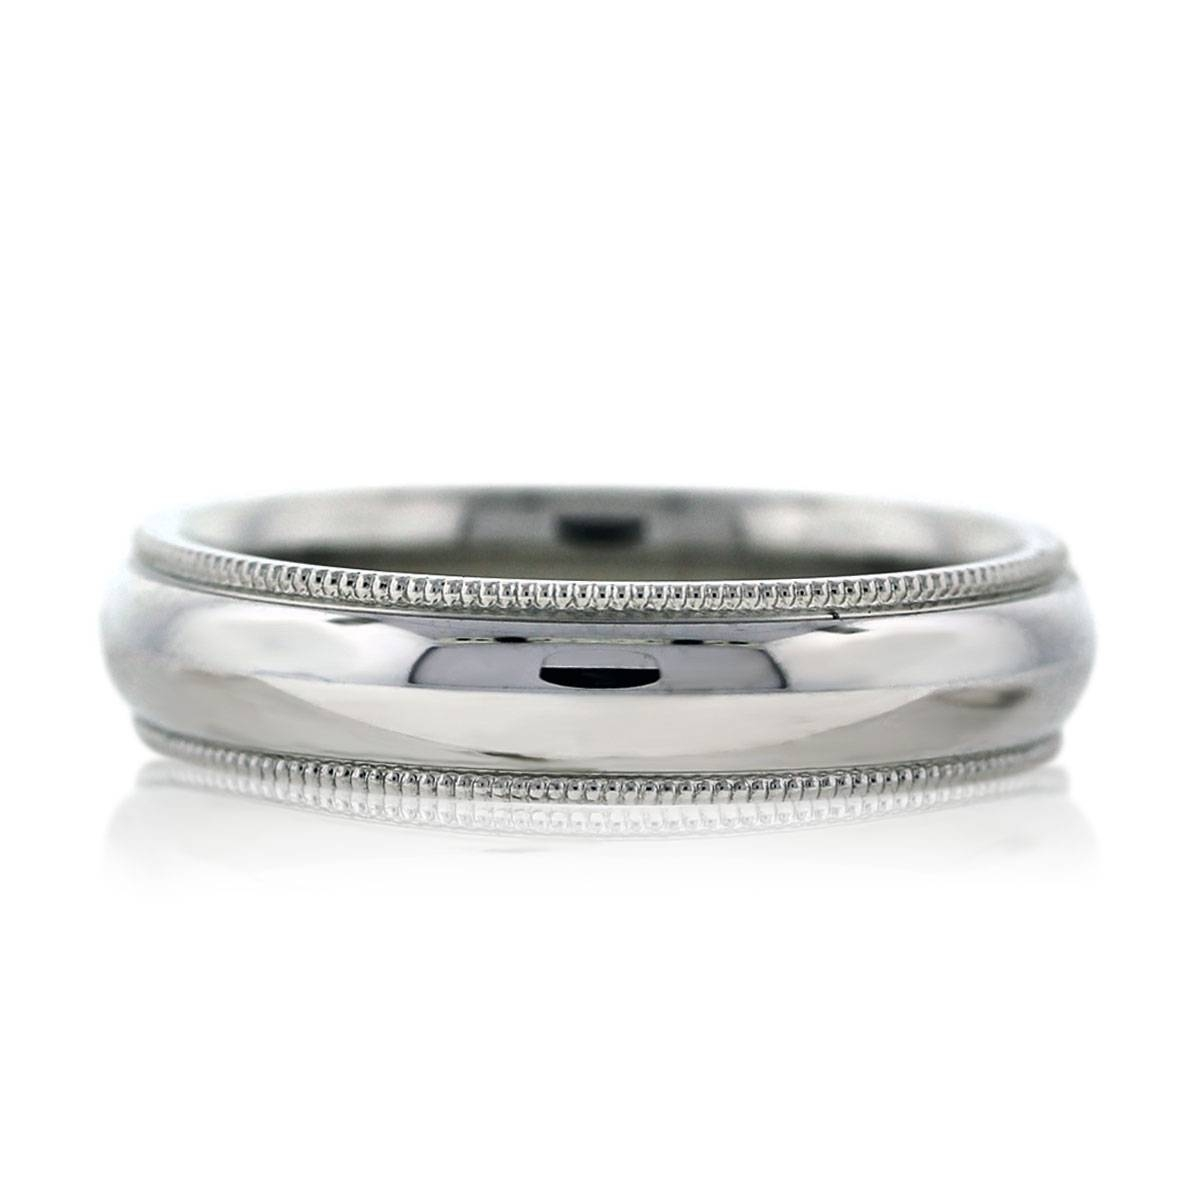 14K White Gold Milgrain Mens Wedding Band Ring Boca Raton Throughout Harry Winston Men Wedding Bands (View 1 of 15)